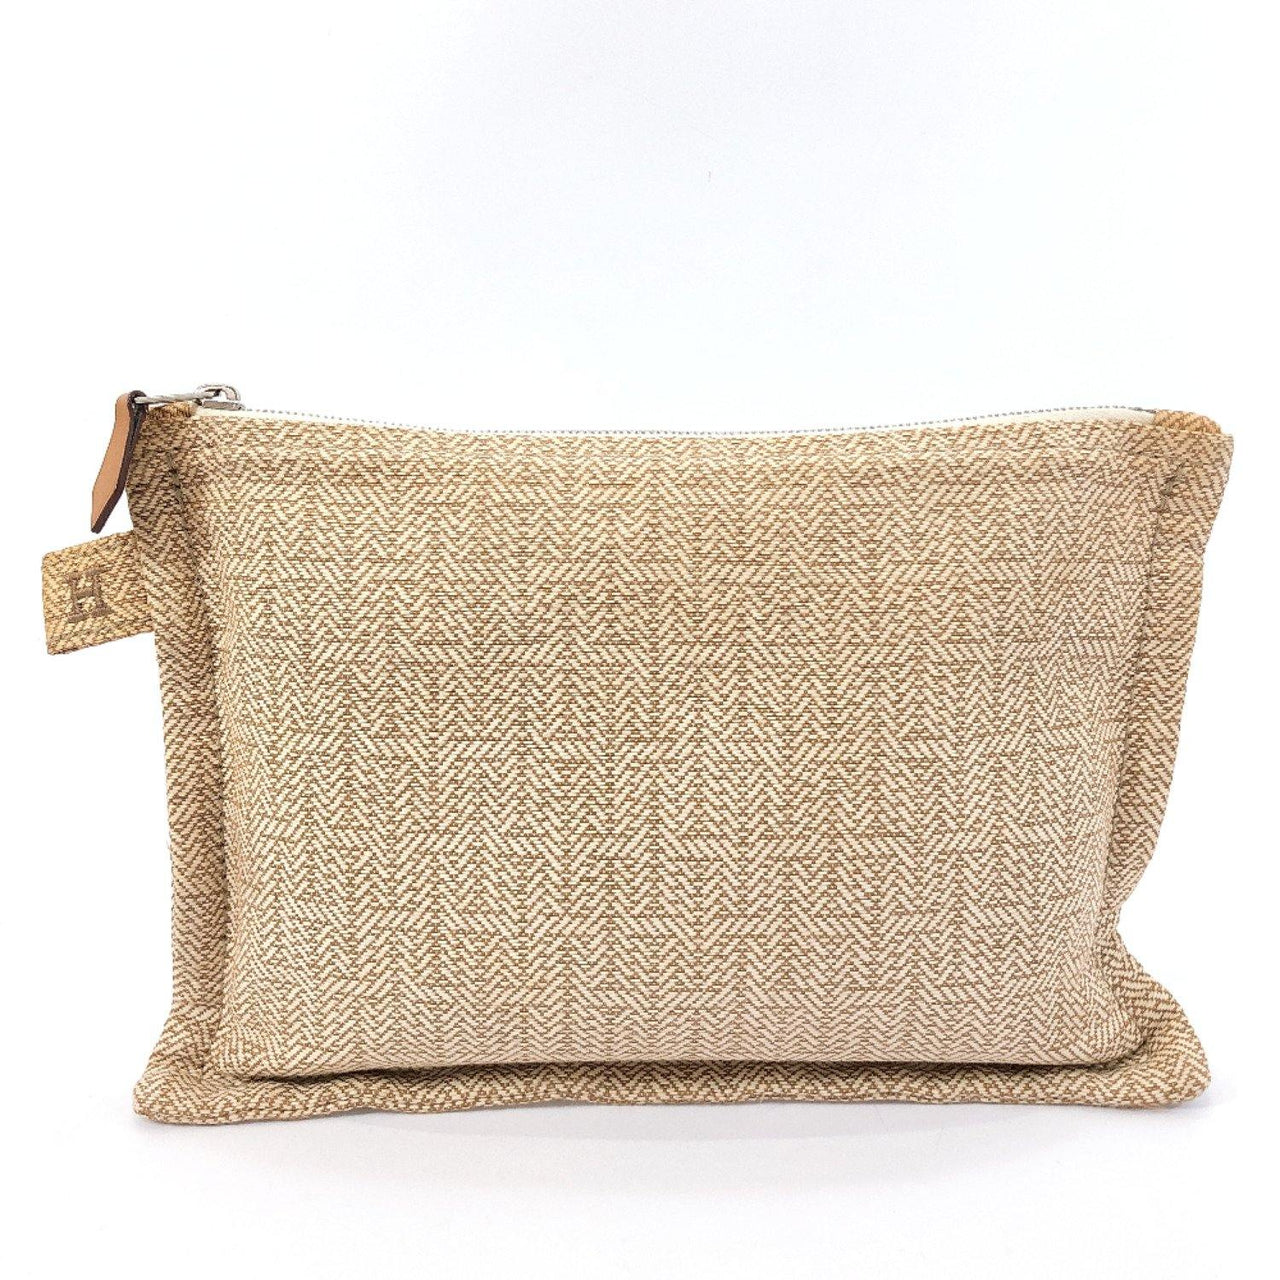 HERMES Pouch hemp/cotton beige Women Used - JP-BRANDS.com